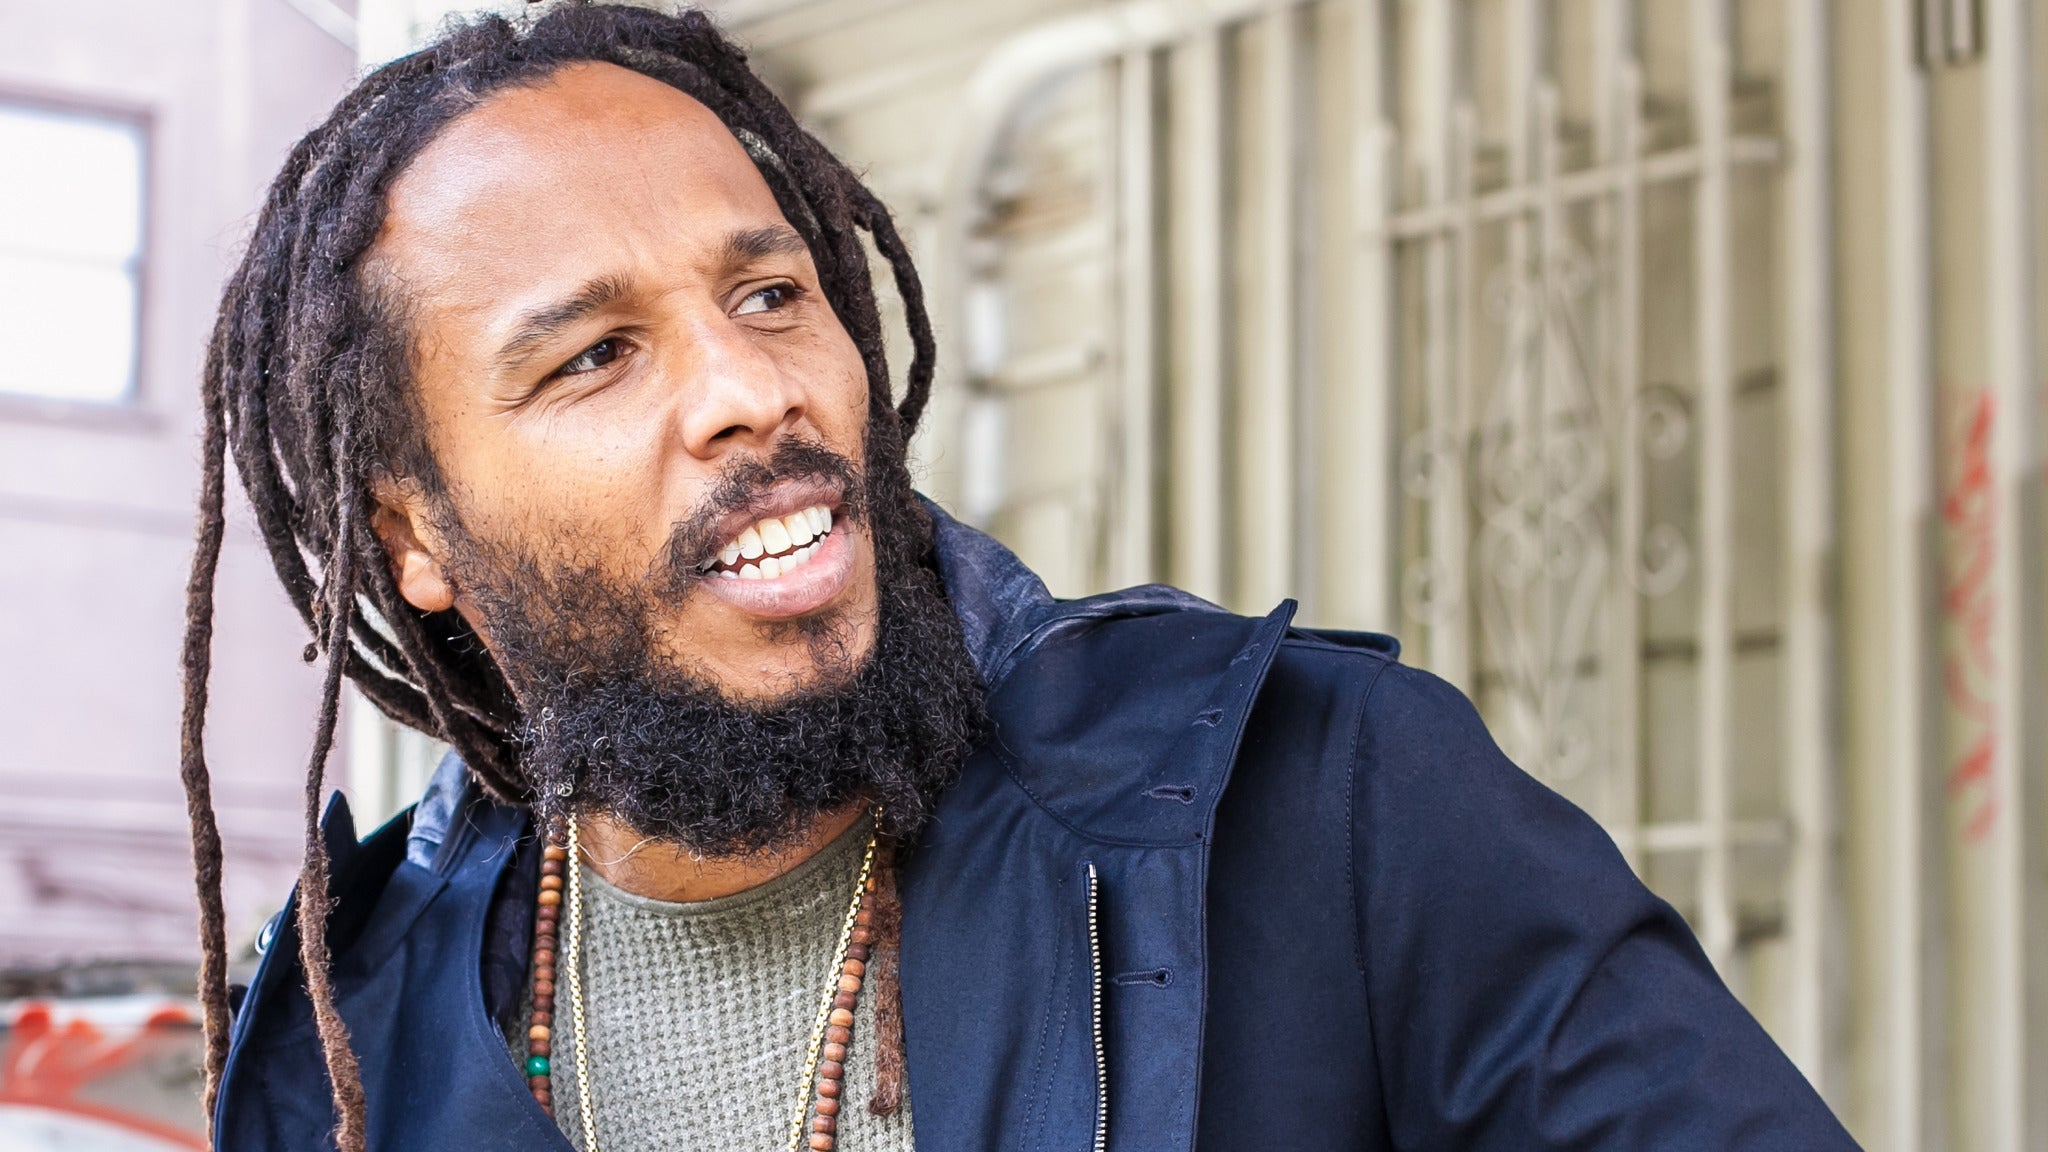 Ziggy Marley at College Street Music Hall